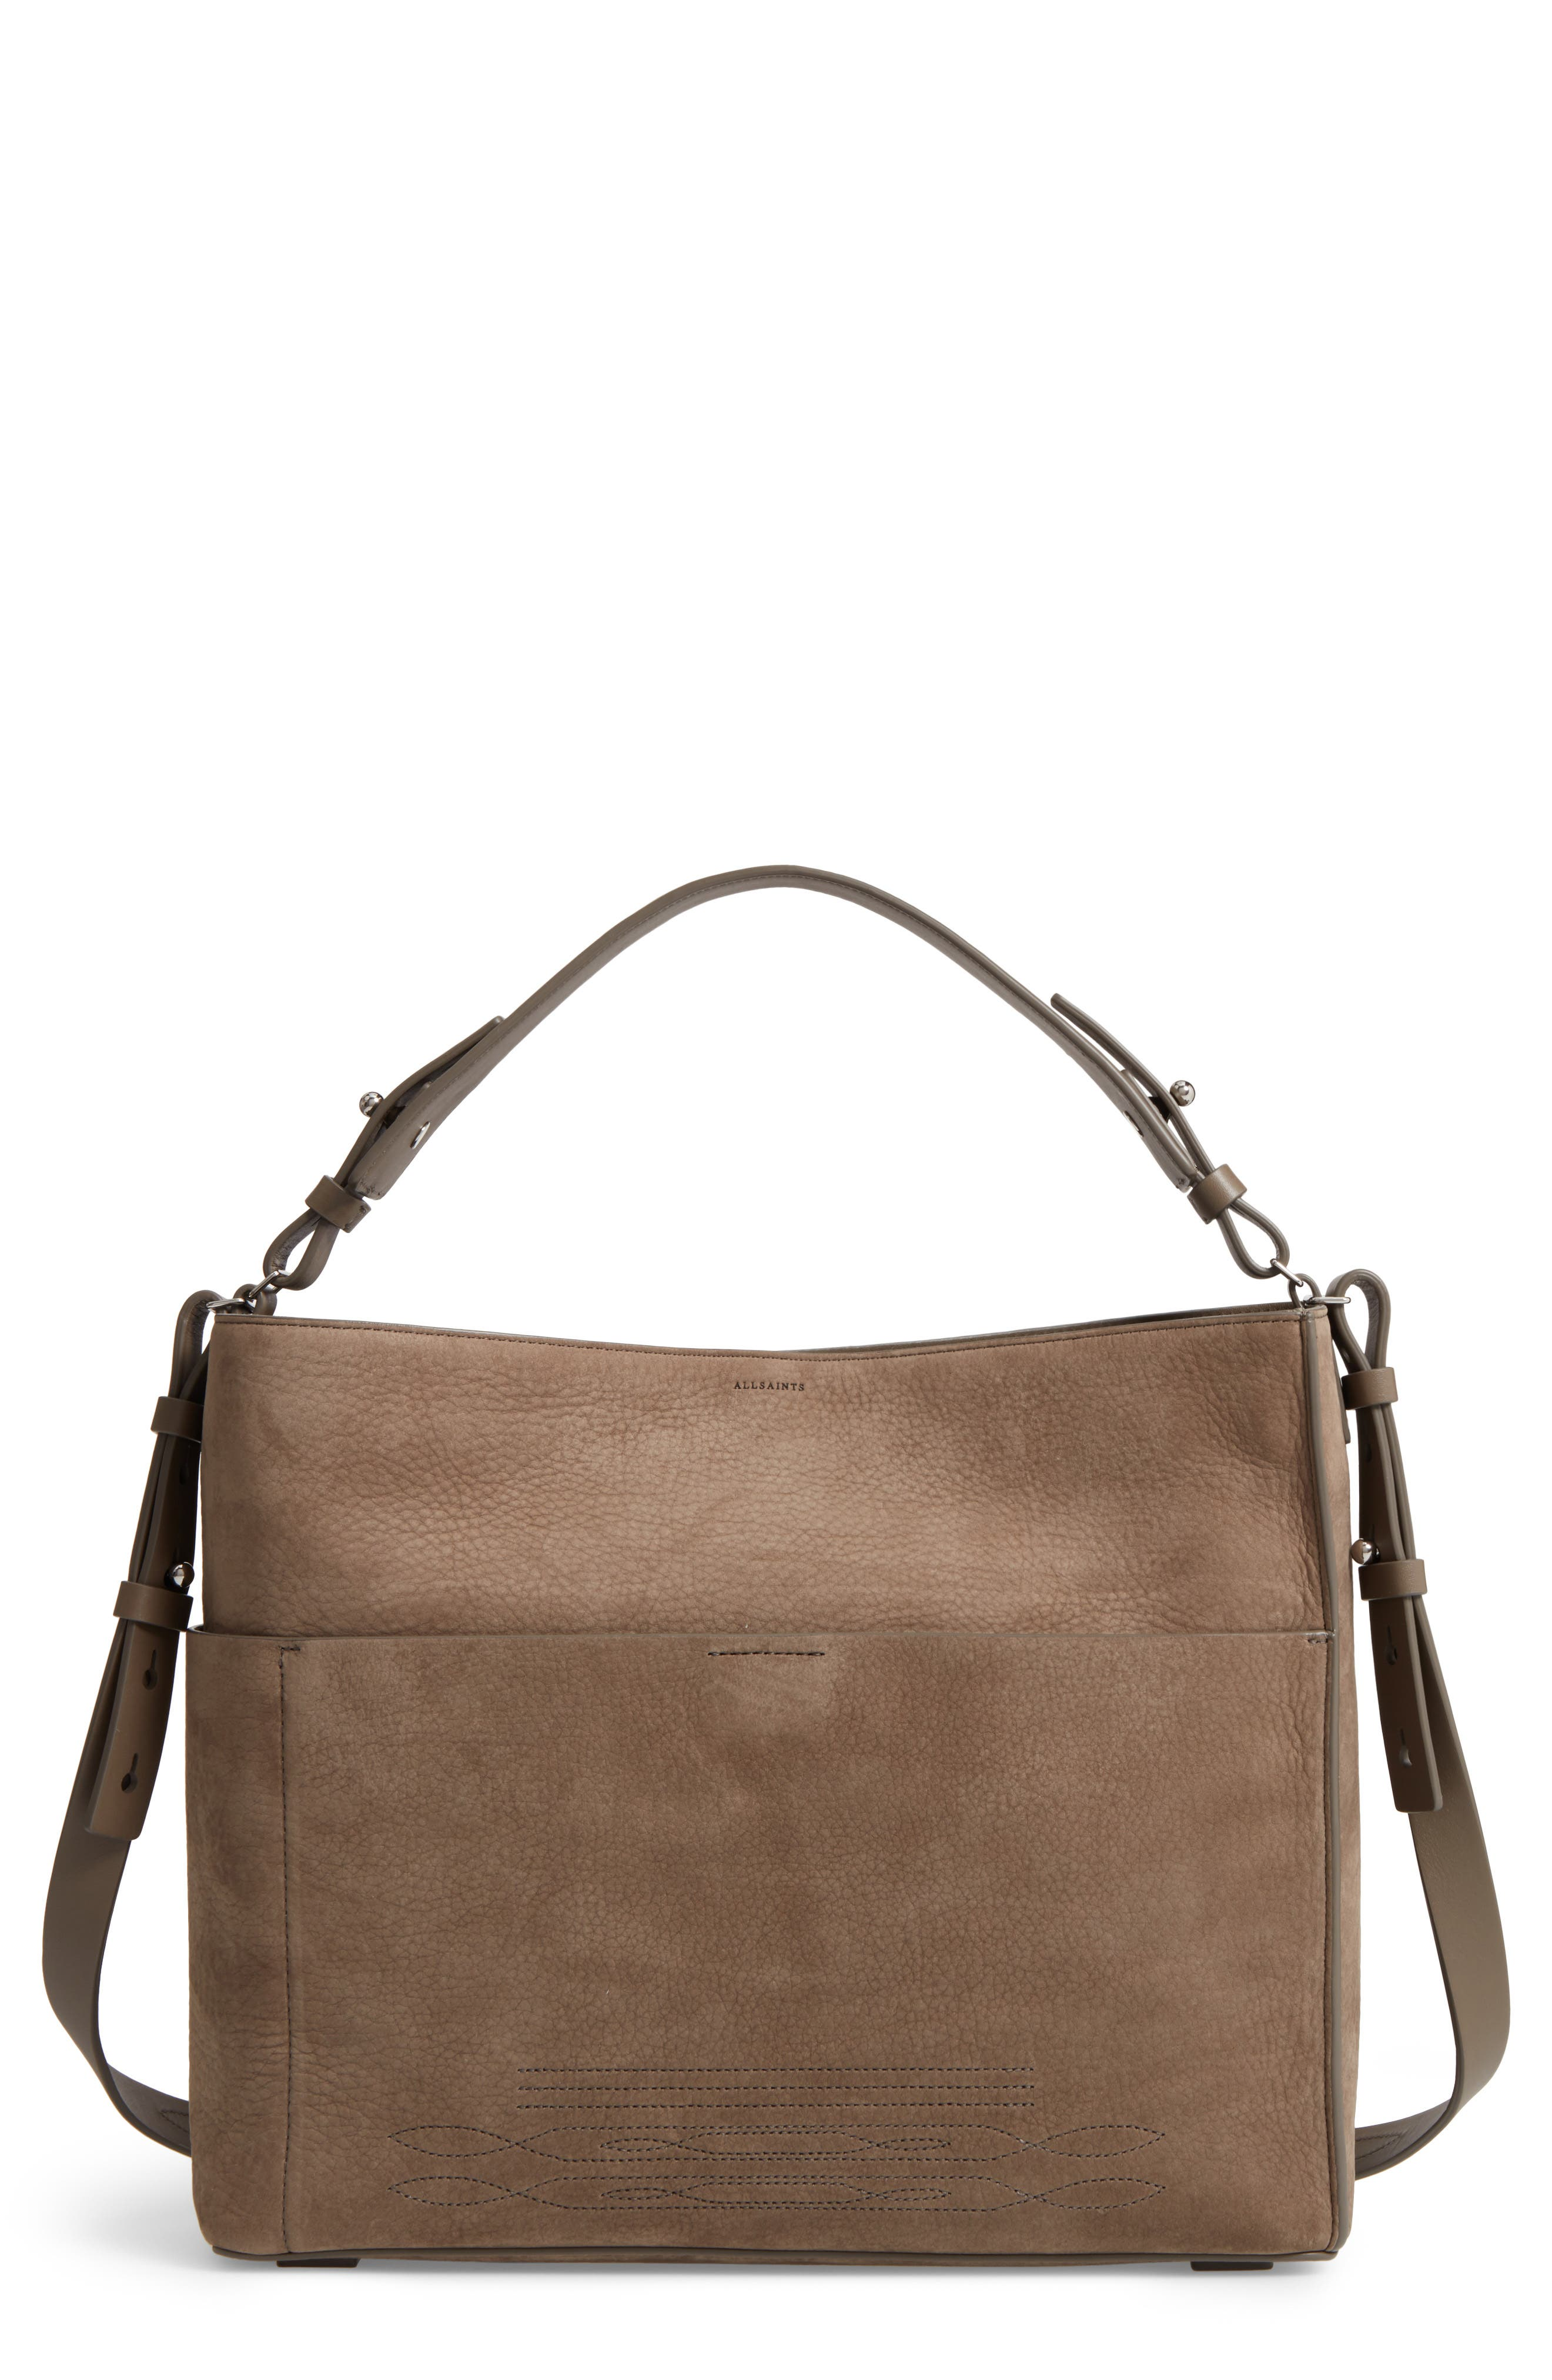 ALLSAINTS Cooper Nubuck Calfskin Leather Tote